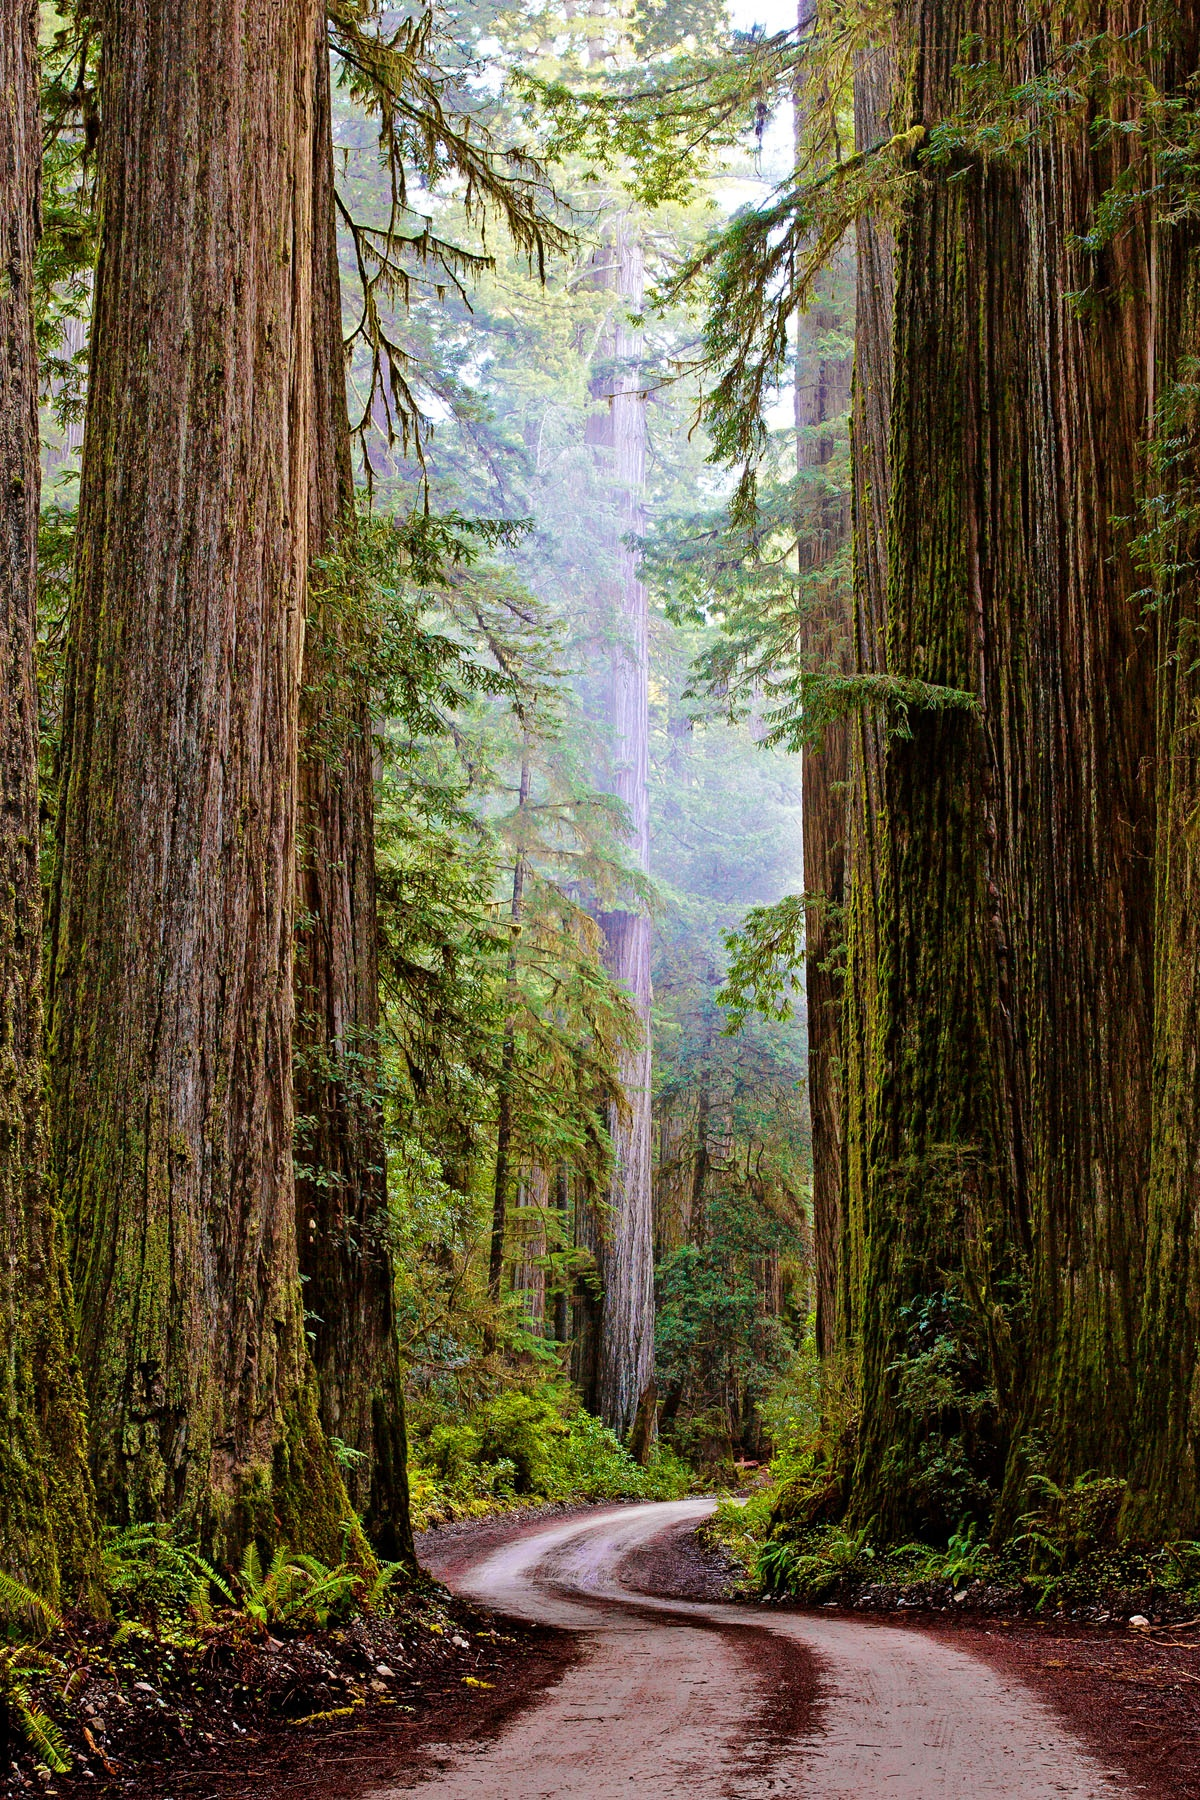 JEDEDIAH SMITH - Jedediah Smith State Redwood Park. This really should be on your short list of things that you must see before you leave this earth. If a drive through this forest on a day in February (that's when I saw it) doesn't convince you that there is a Creator, well ....